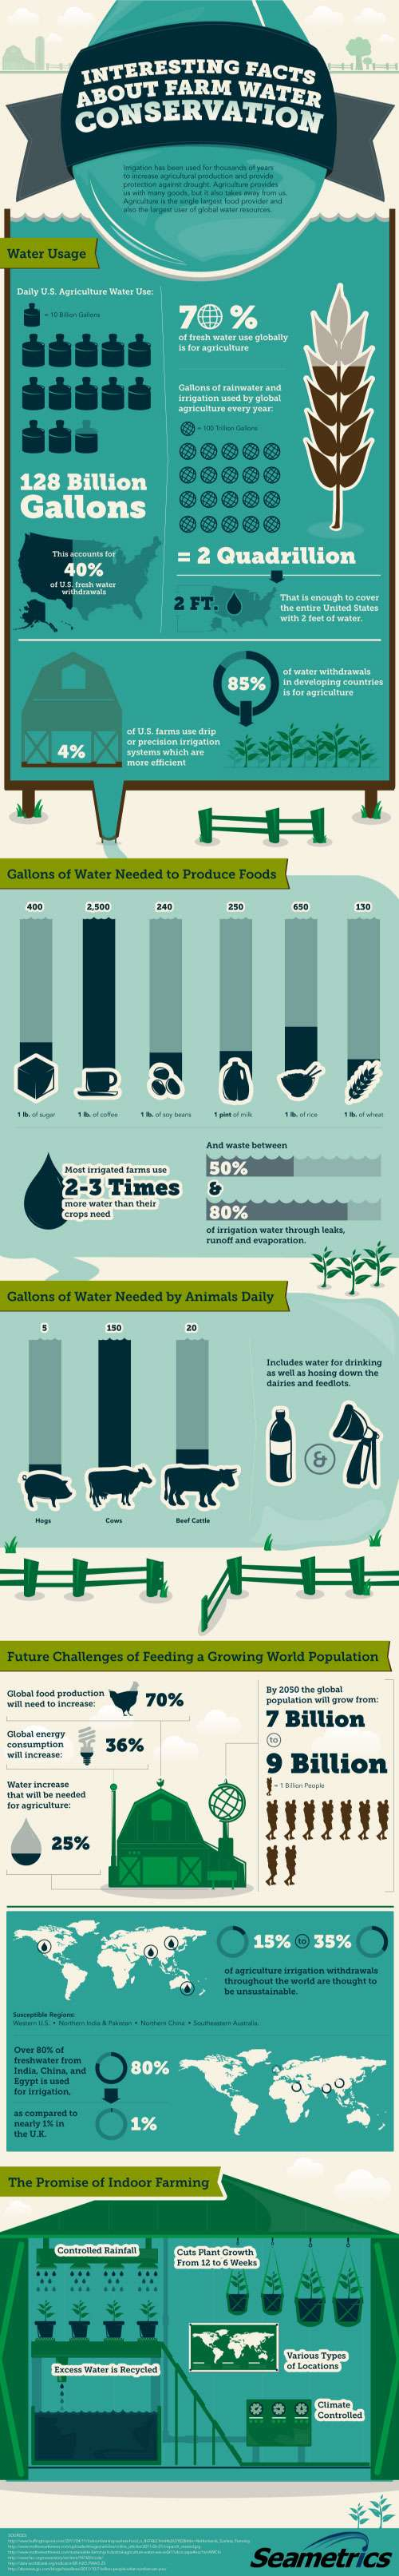 Interesting Facts About Farm Water Conservation Infographic